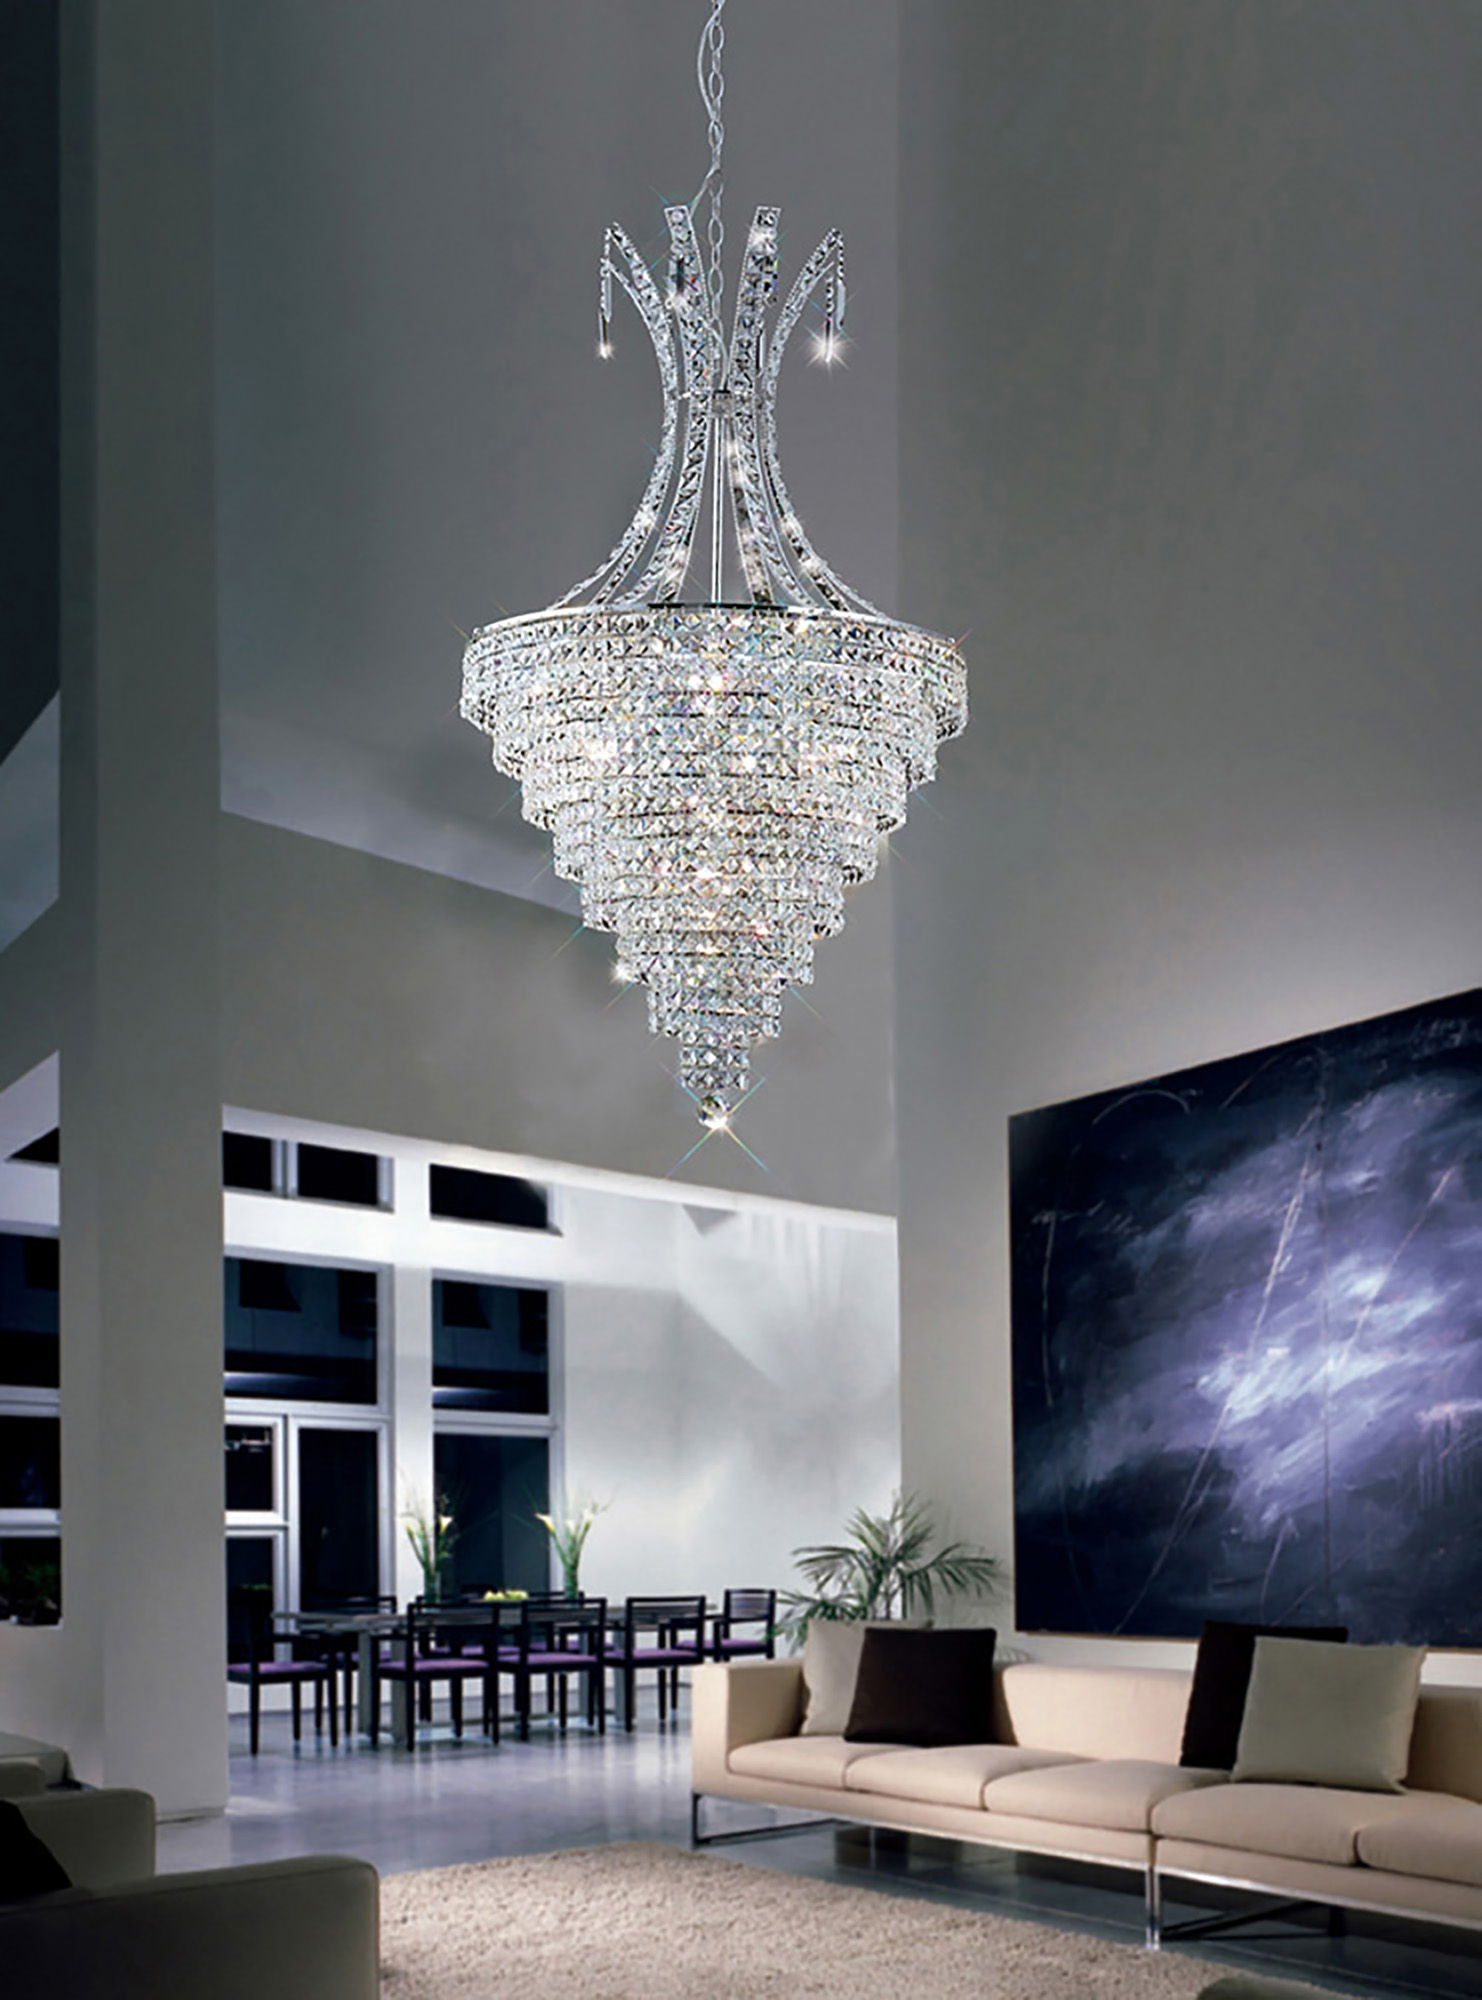 Kanya Crystal Ceiling Lights Diyas Modern Chandeliers